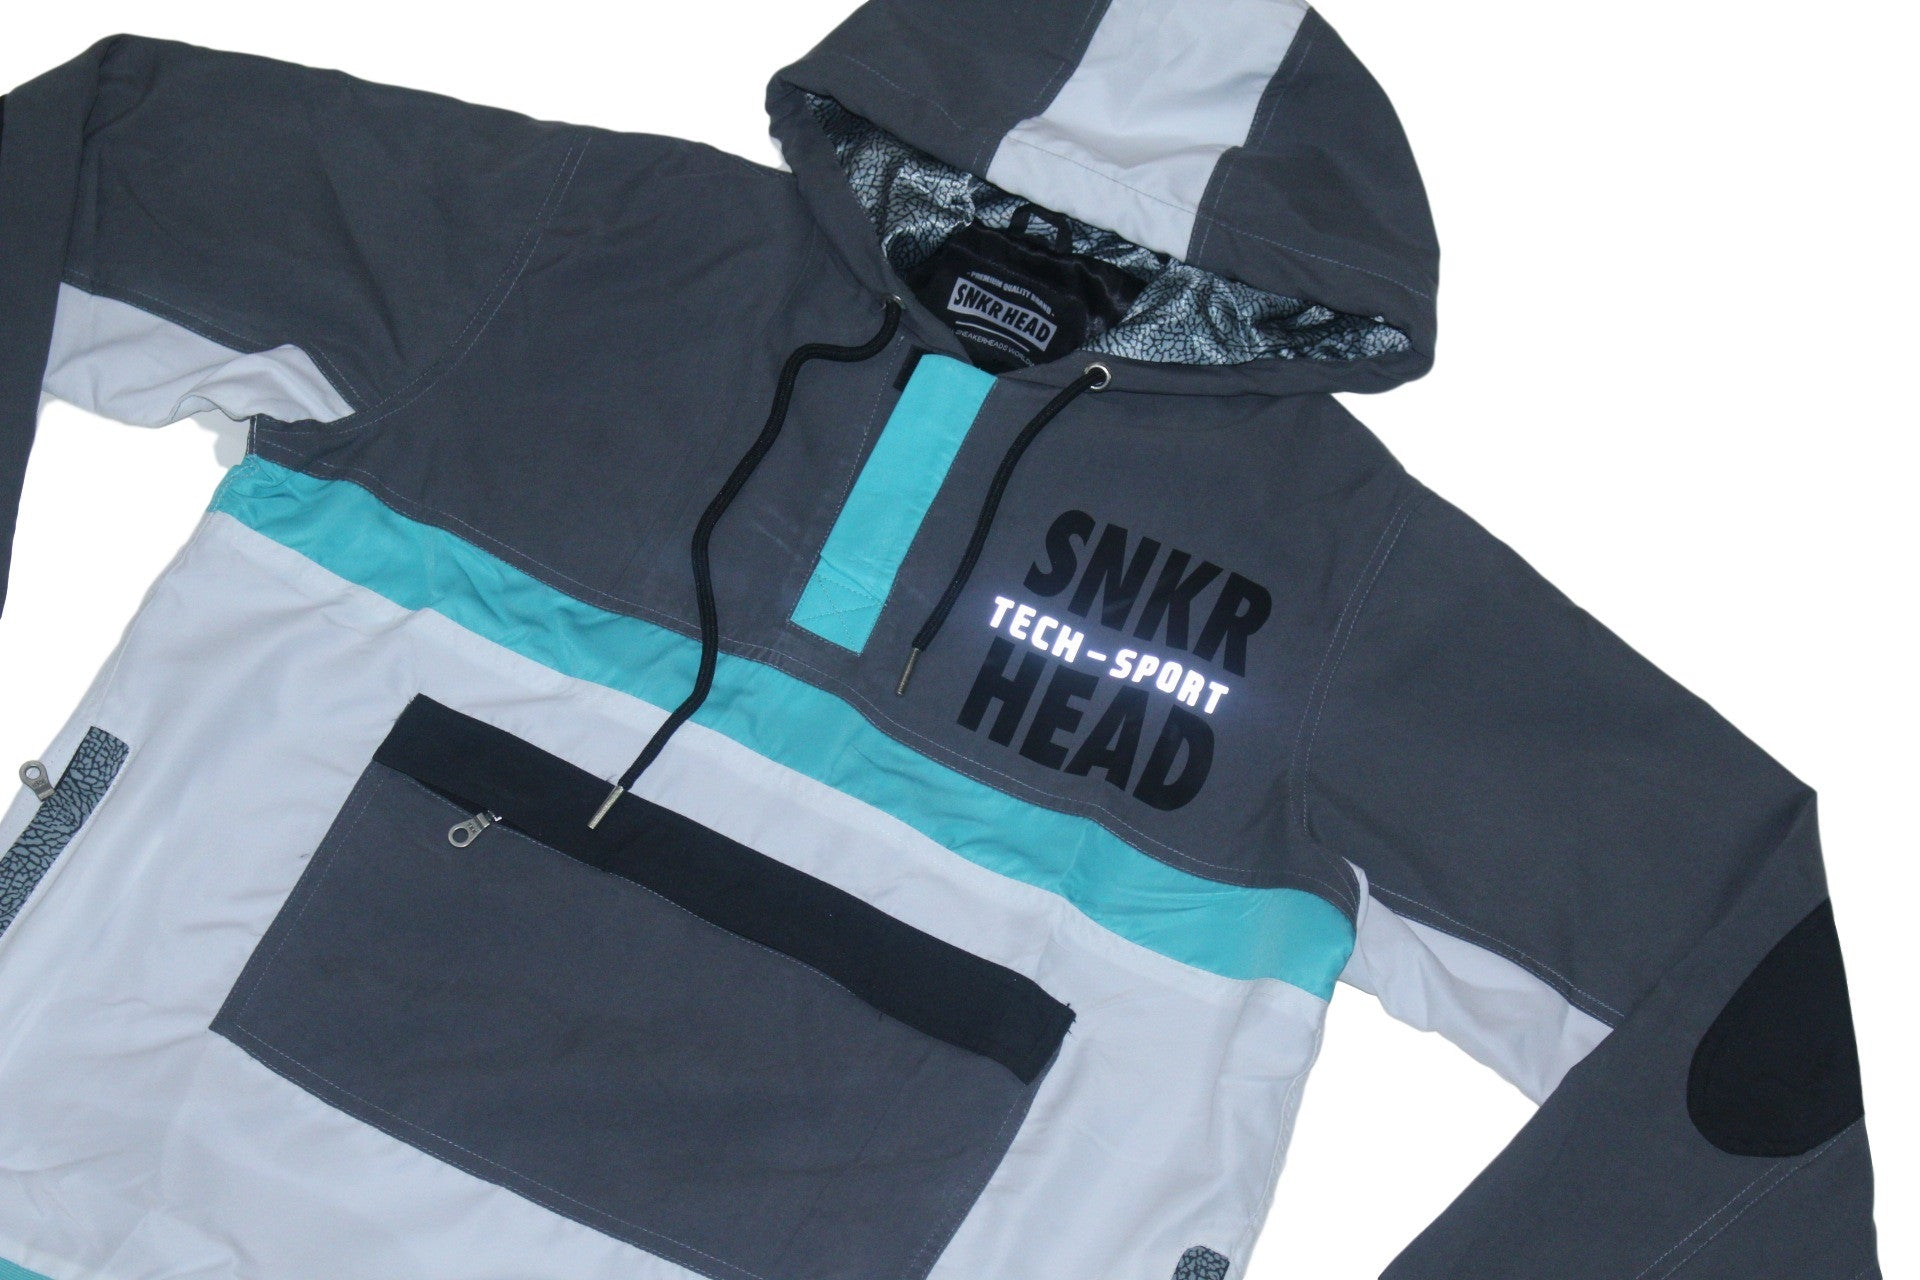 SNKR HEAD Tech-Sport International Windbreaker Jacket (grey, blue, white)